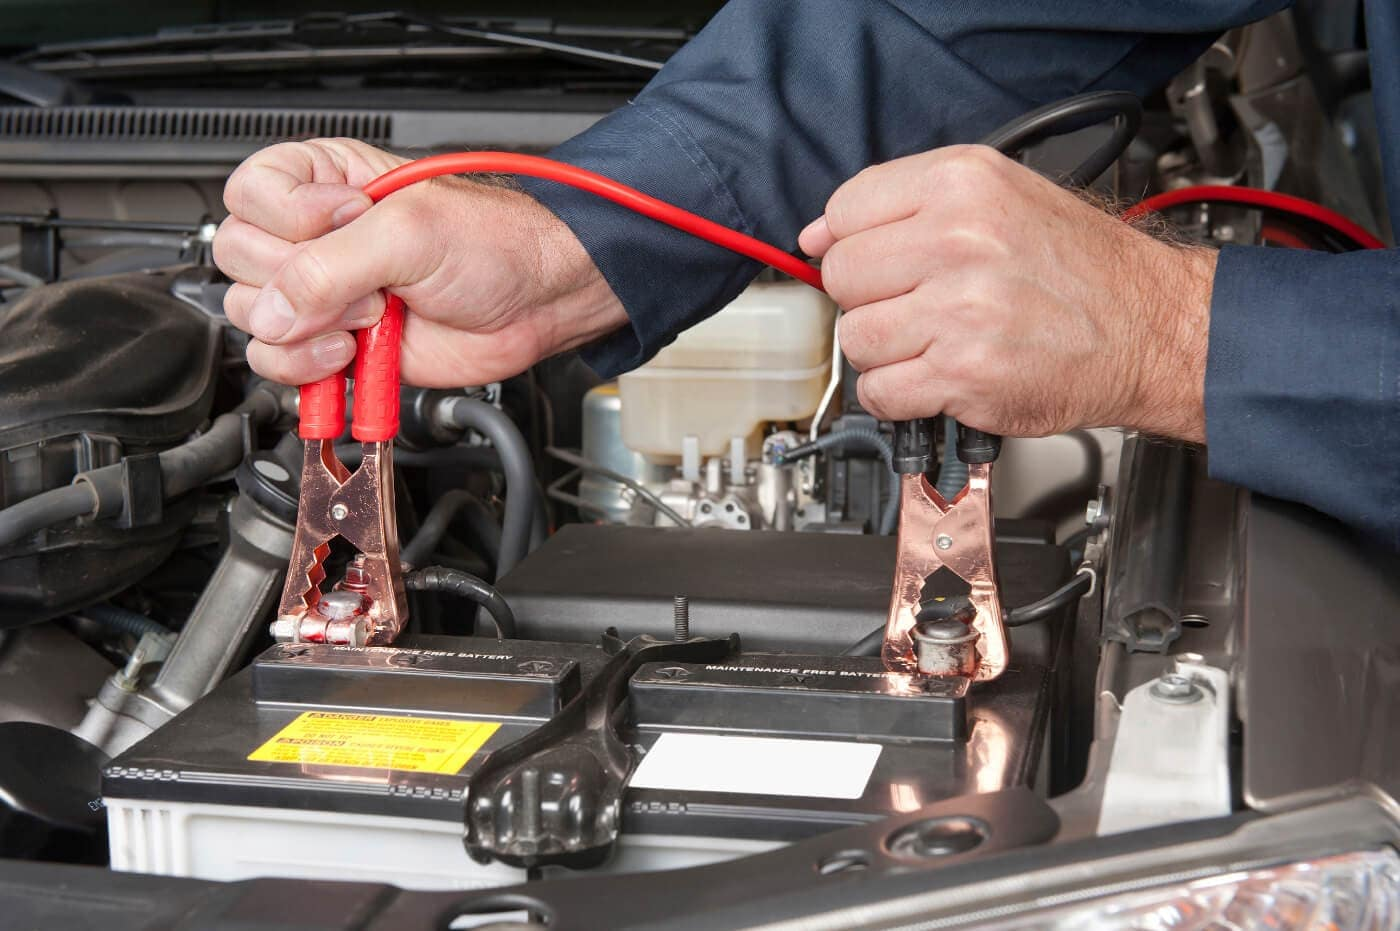 A mechanic charging a car battery